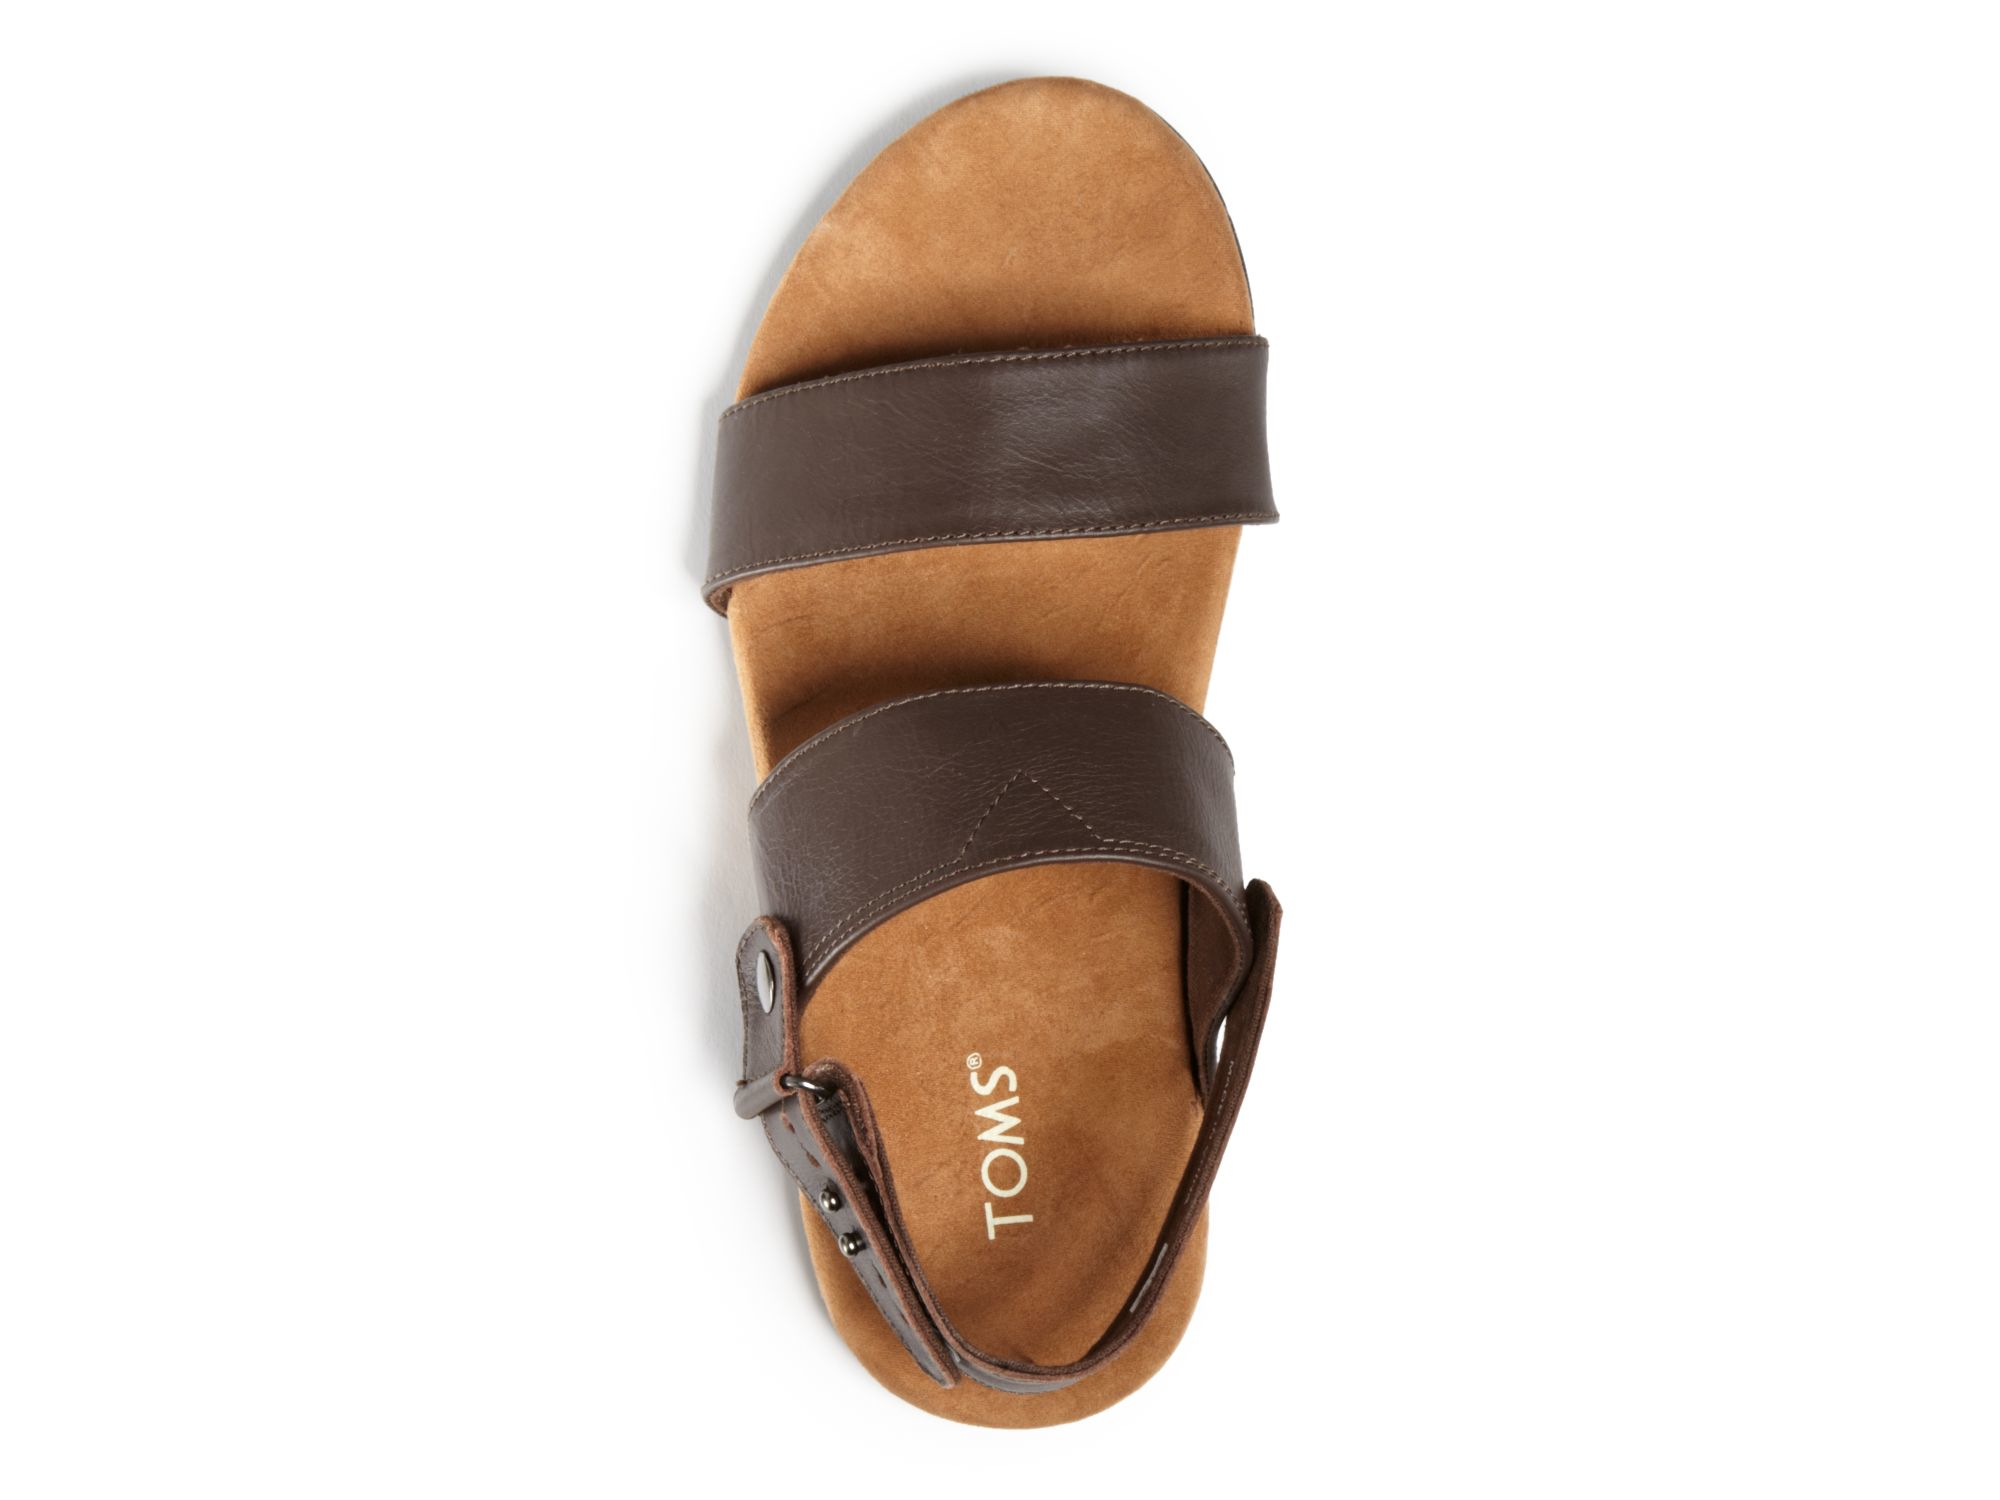 b5b59ca67168e Lyst - TOMS Moreno Woven Sandals in Brown for Men